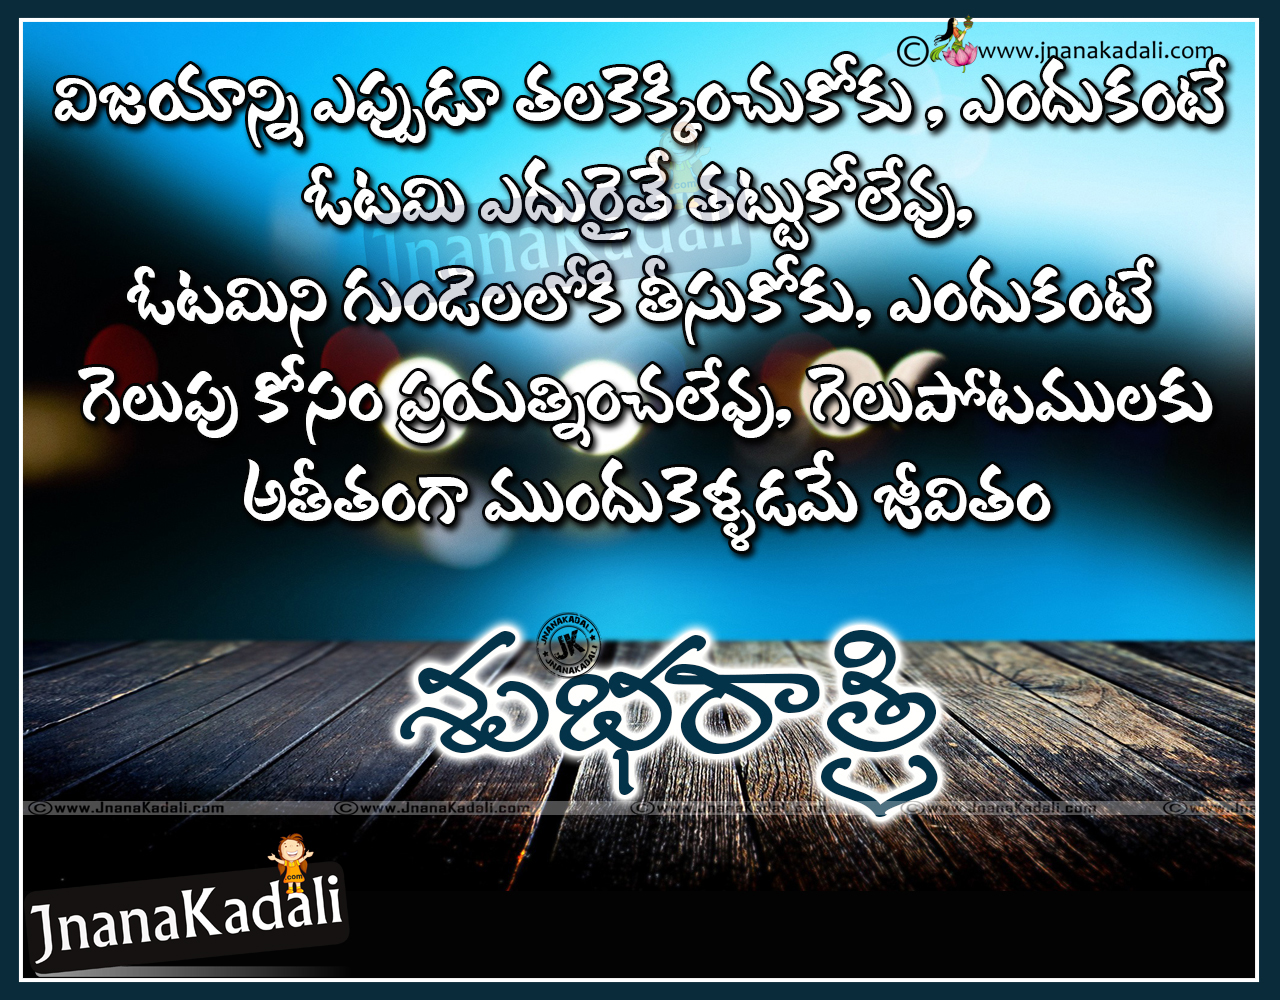 Great Quotations Telugu New Good Night Greetings With Good Results Quotes  Jnana